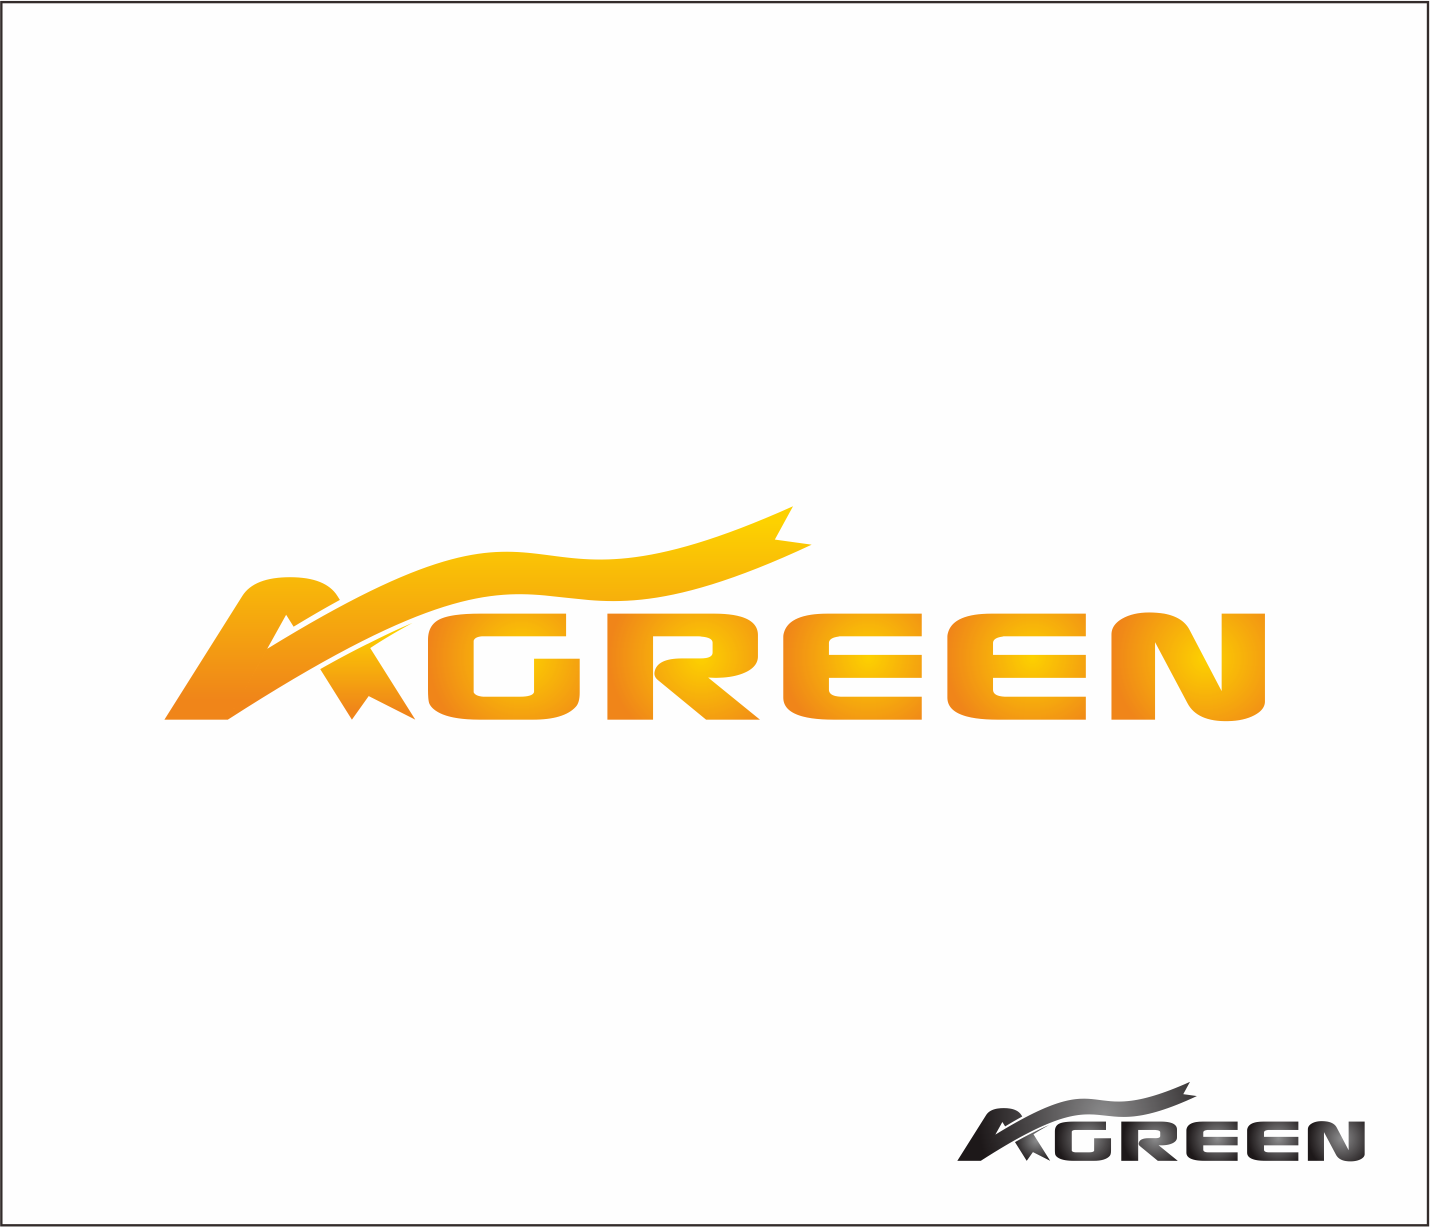 Logo Design by Armada Jamaluddin - Entry No. 7 in the Logo Design Contest Inspiring Logo Design for Agreen.